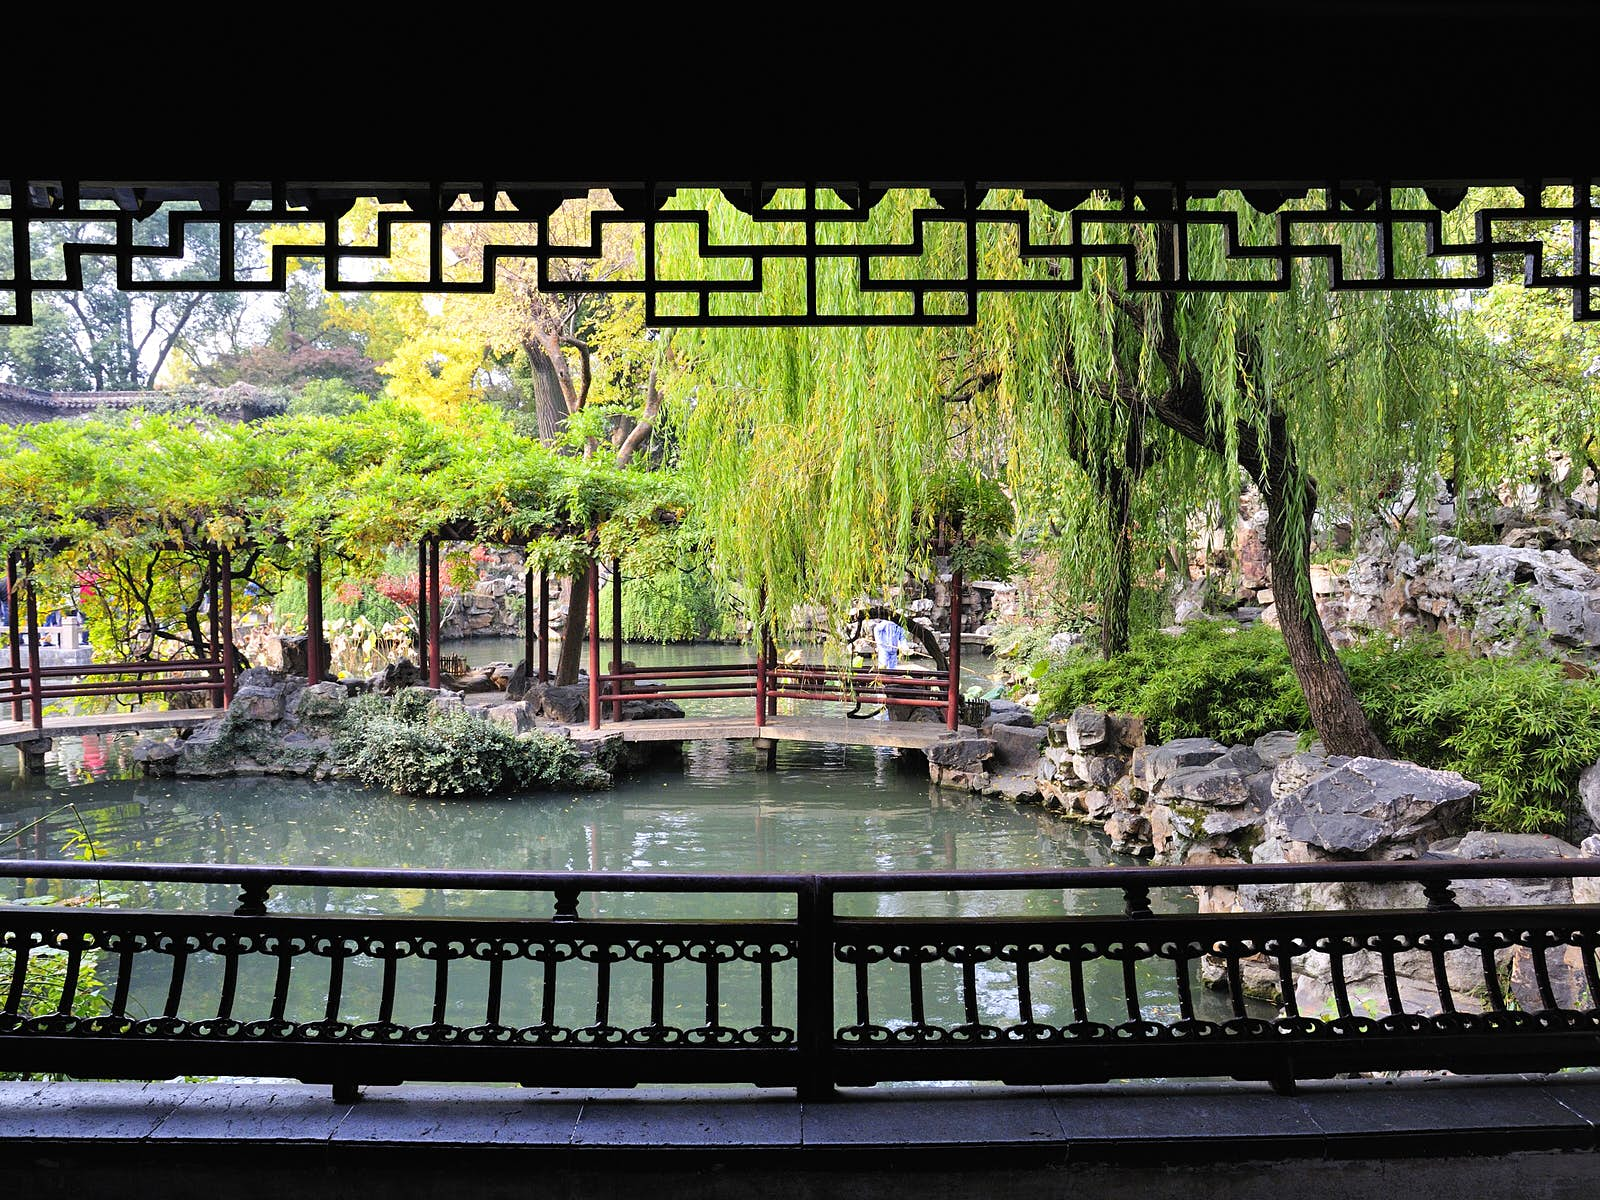 View from inside a covered pavilion, framed by wooden lattice, onto a pond with overhanging willow trees. Visiting a smaller garden at off-peak times is the best way to enjoy its intended tranquility © walkdragon / Shutterstock